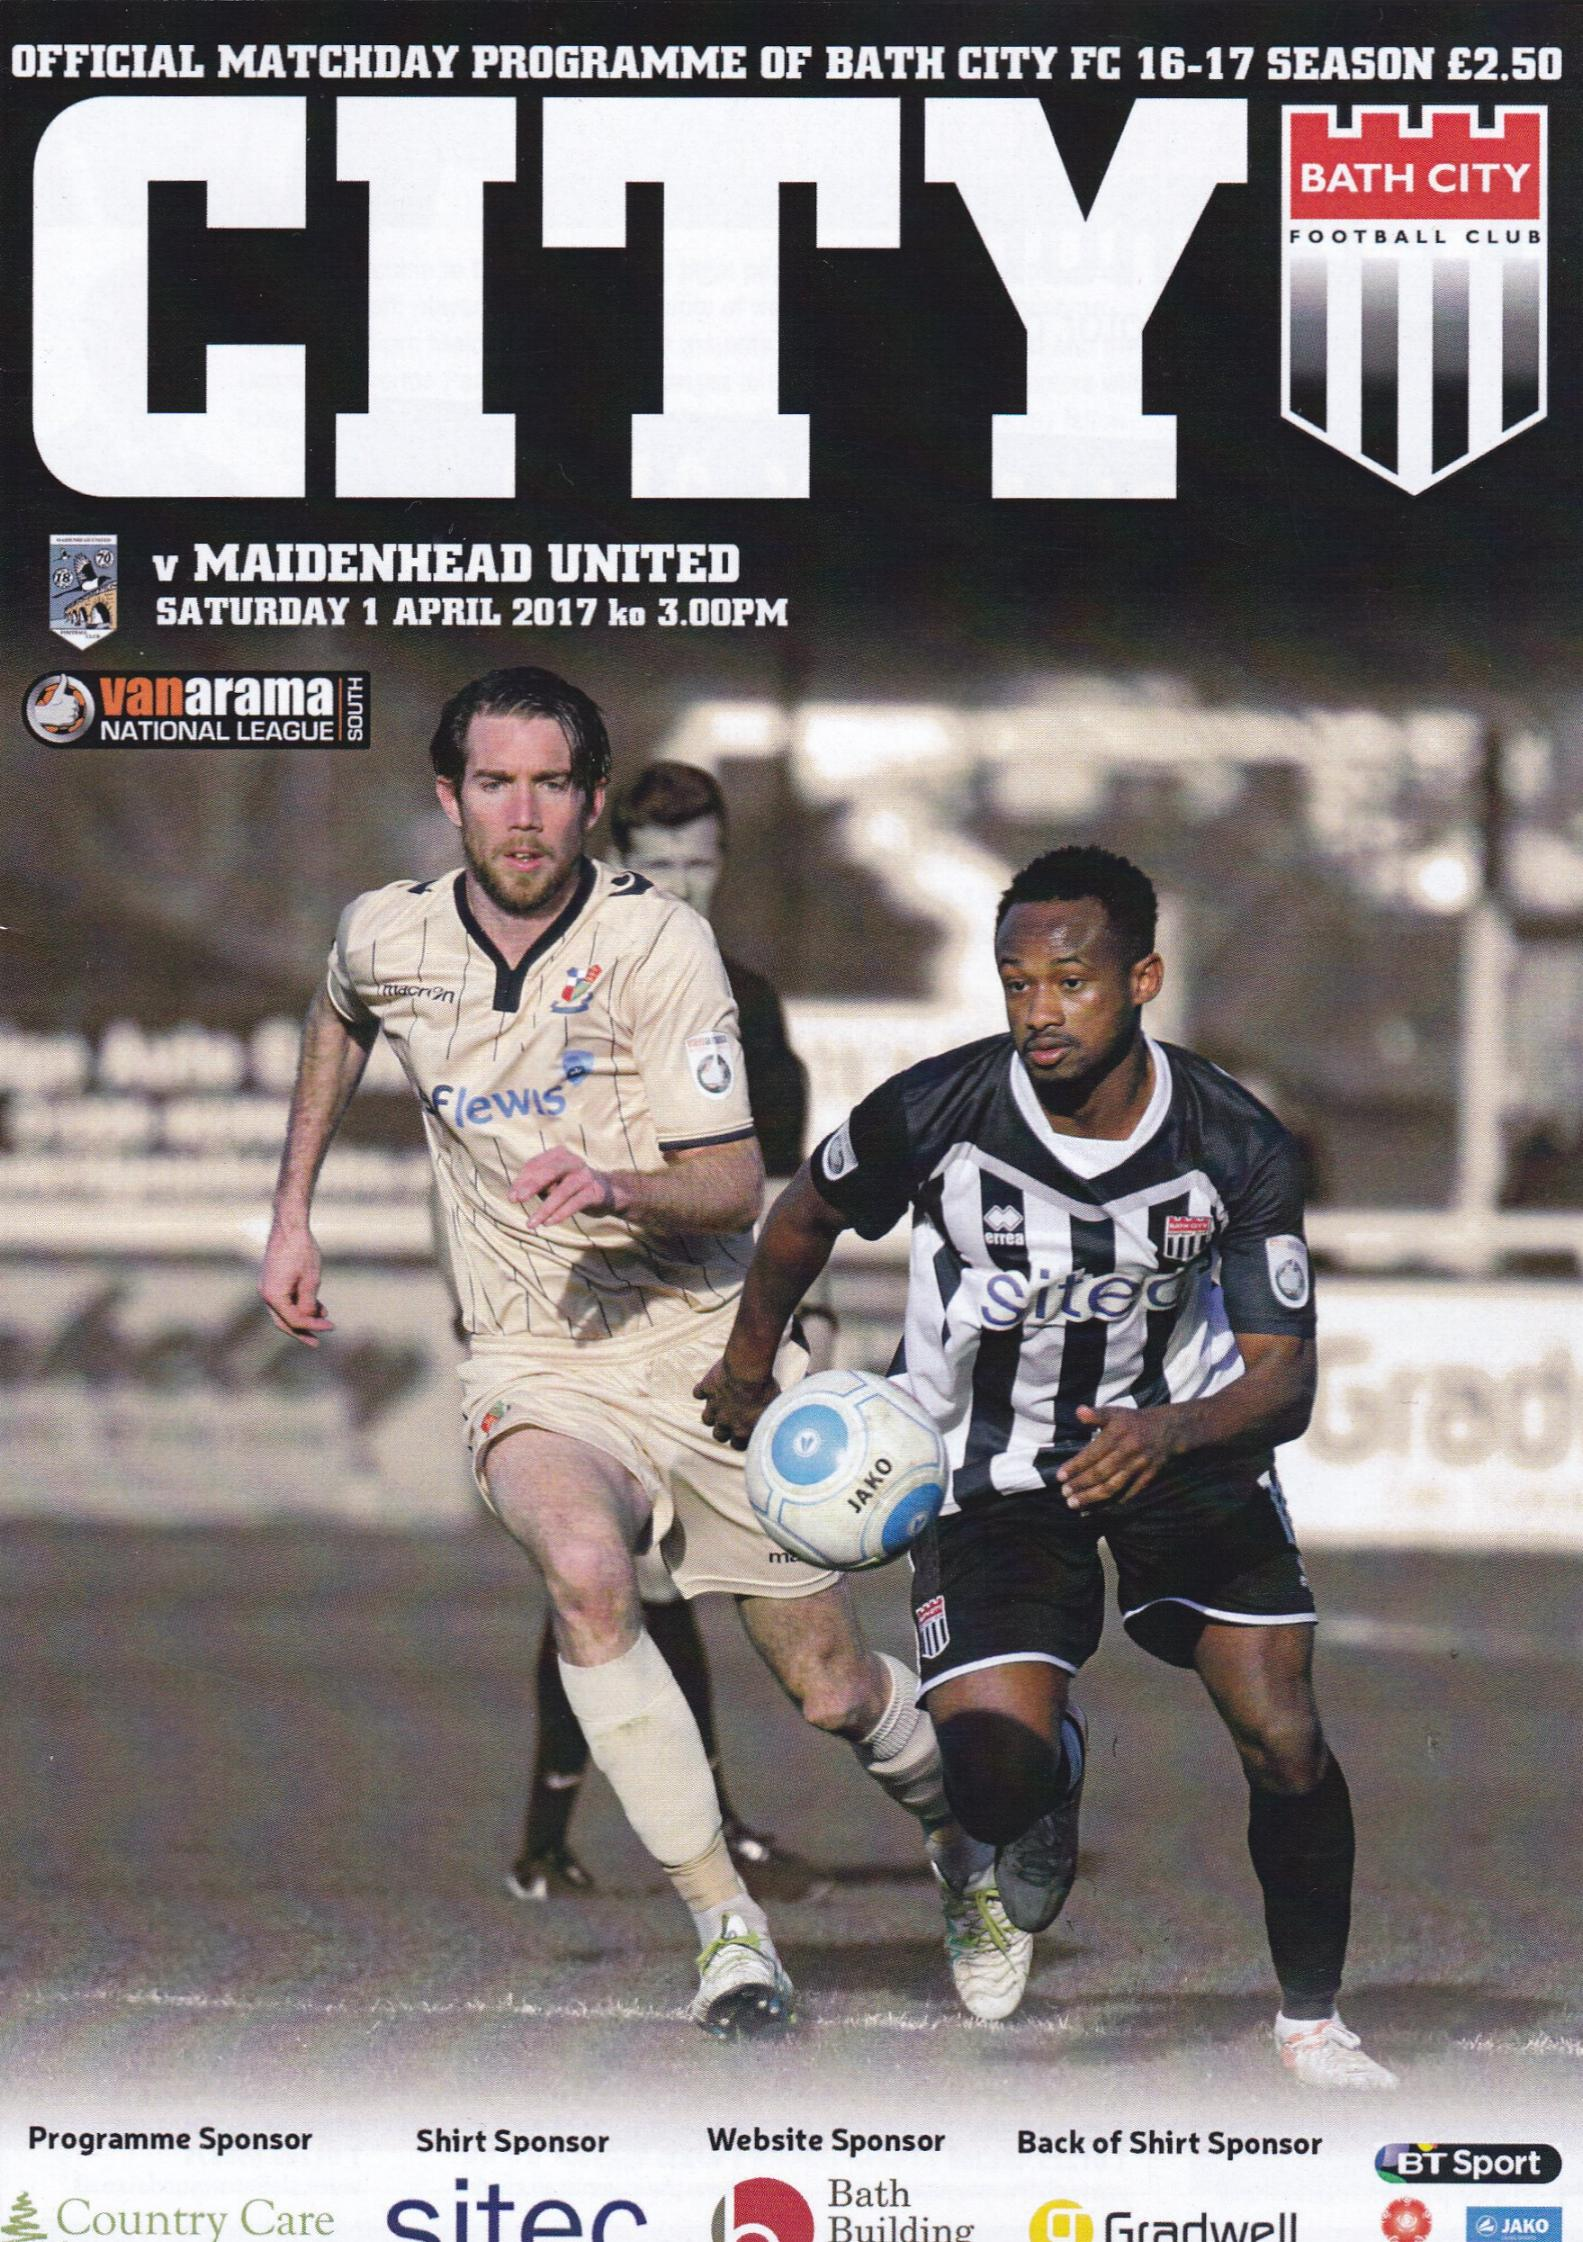 BATH CITY v MAIDENHEAD UNITED 2016/17